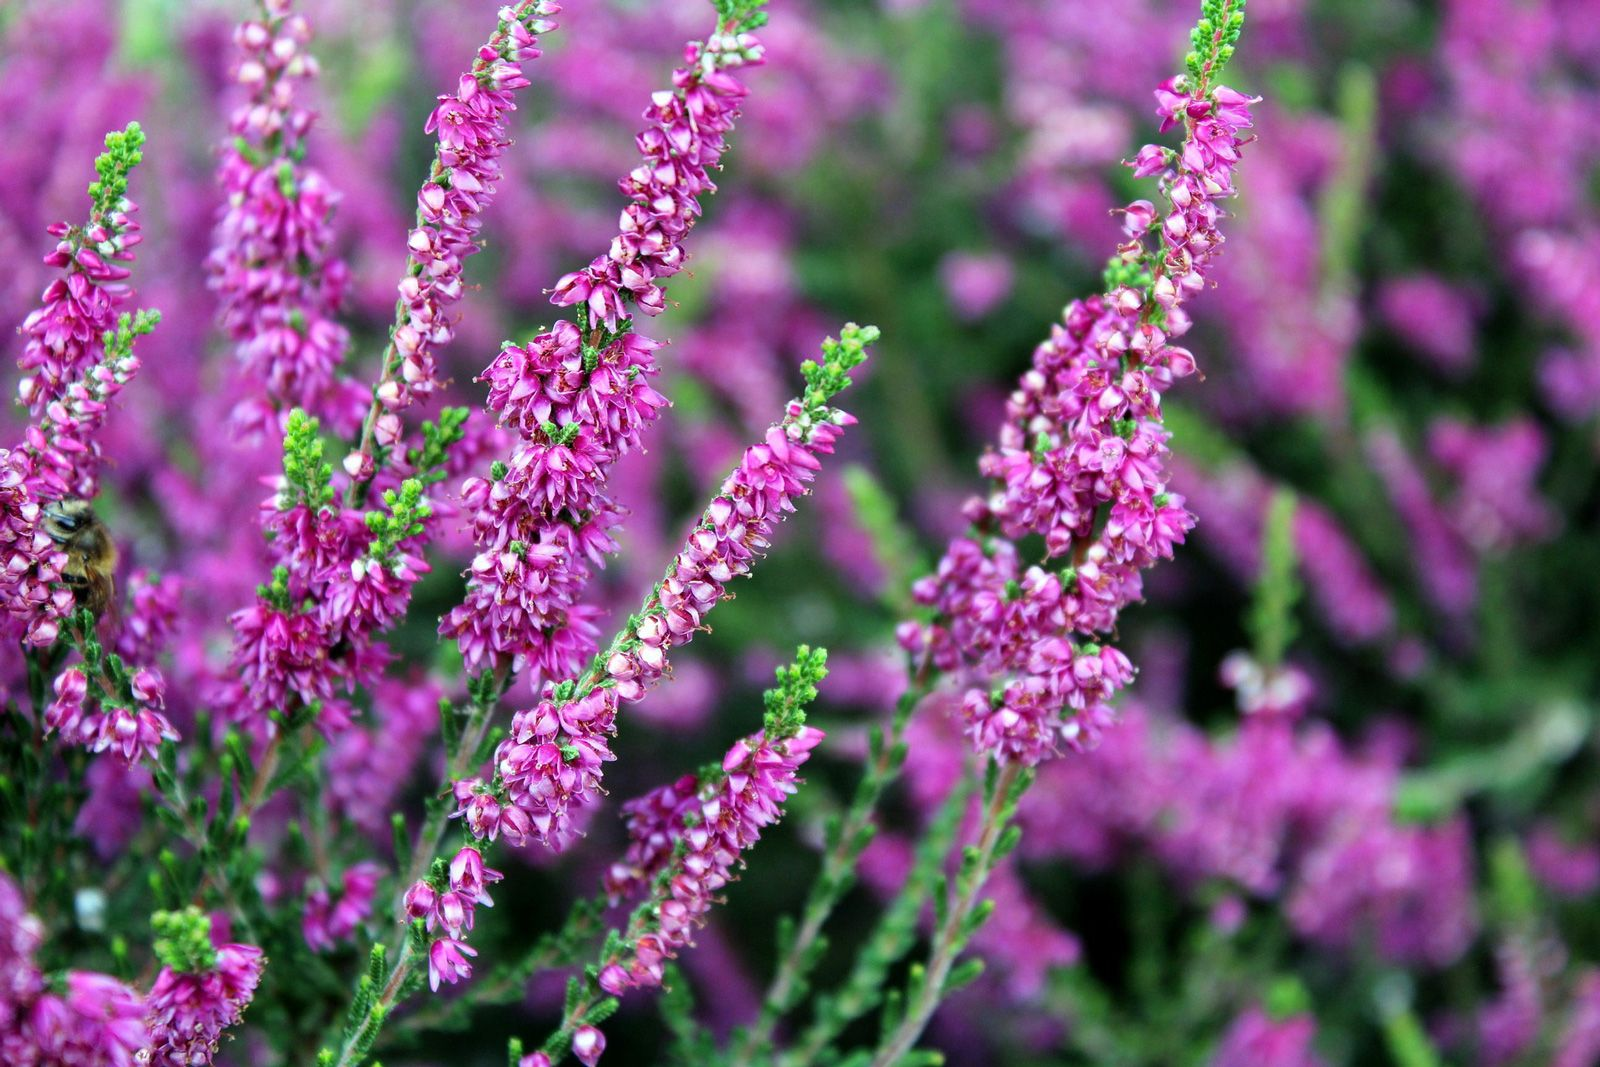 Celtic Meaning Heather Meaning In The Druid Ogham On Heather Plant Plants Perennial Garden Plans